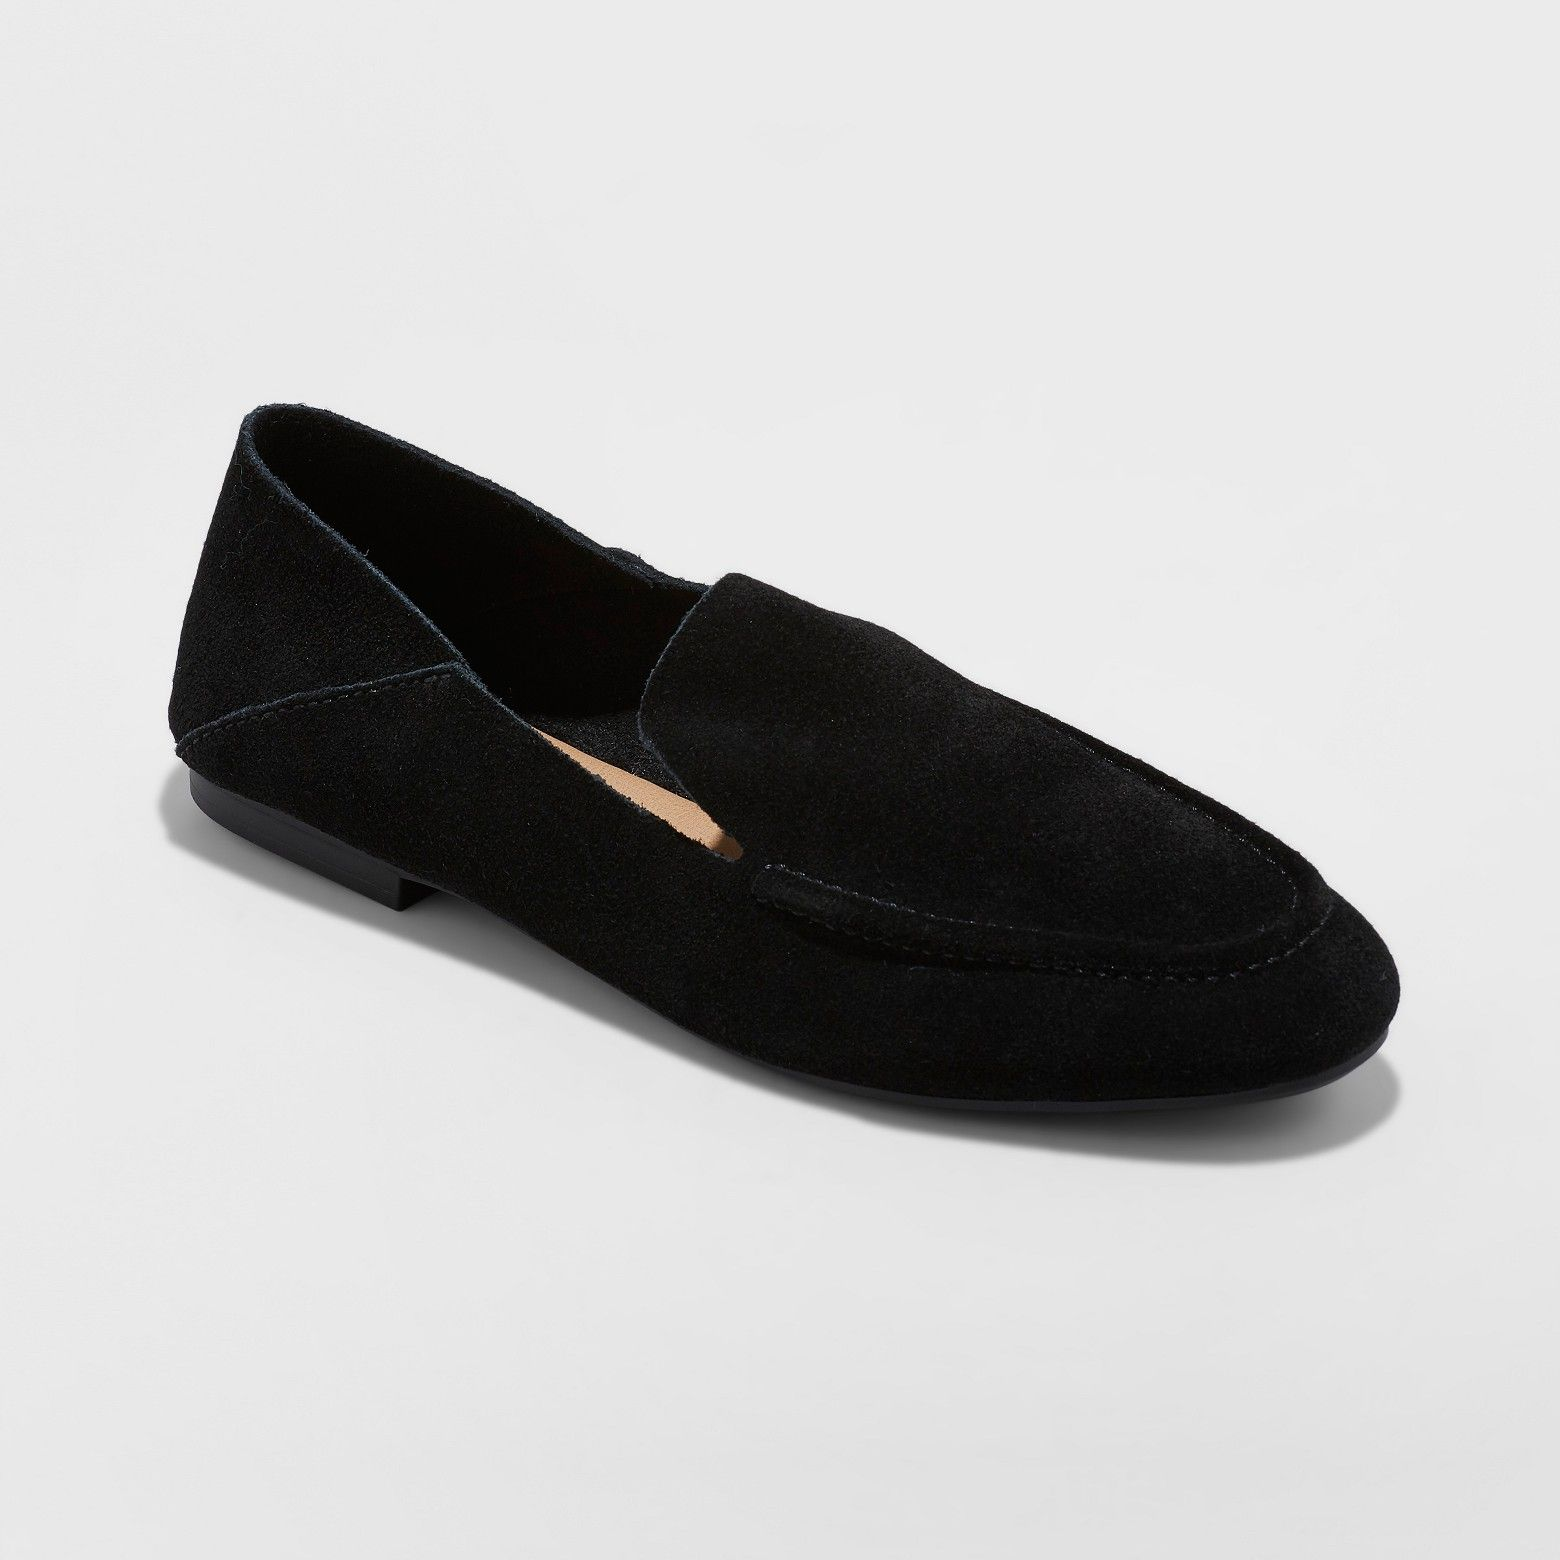 0f203b872b30 Women s Jisela Collapsible Back Loafers - A New Day - Target ...